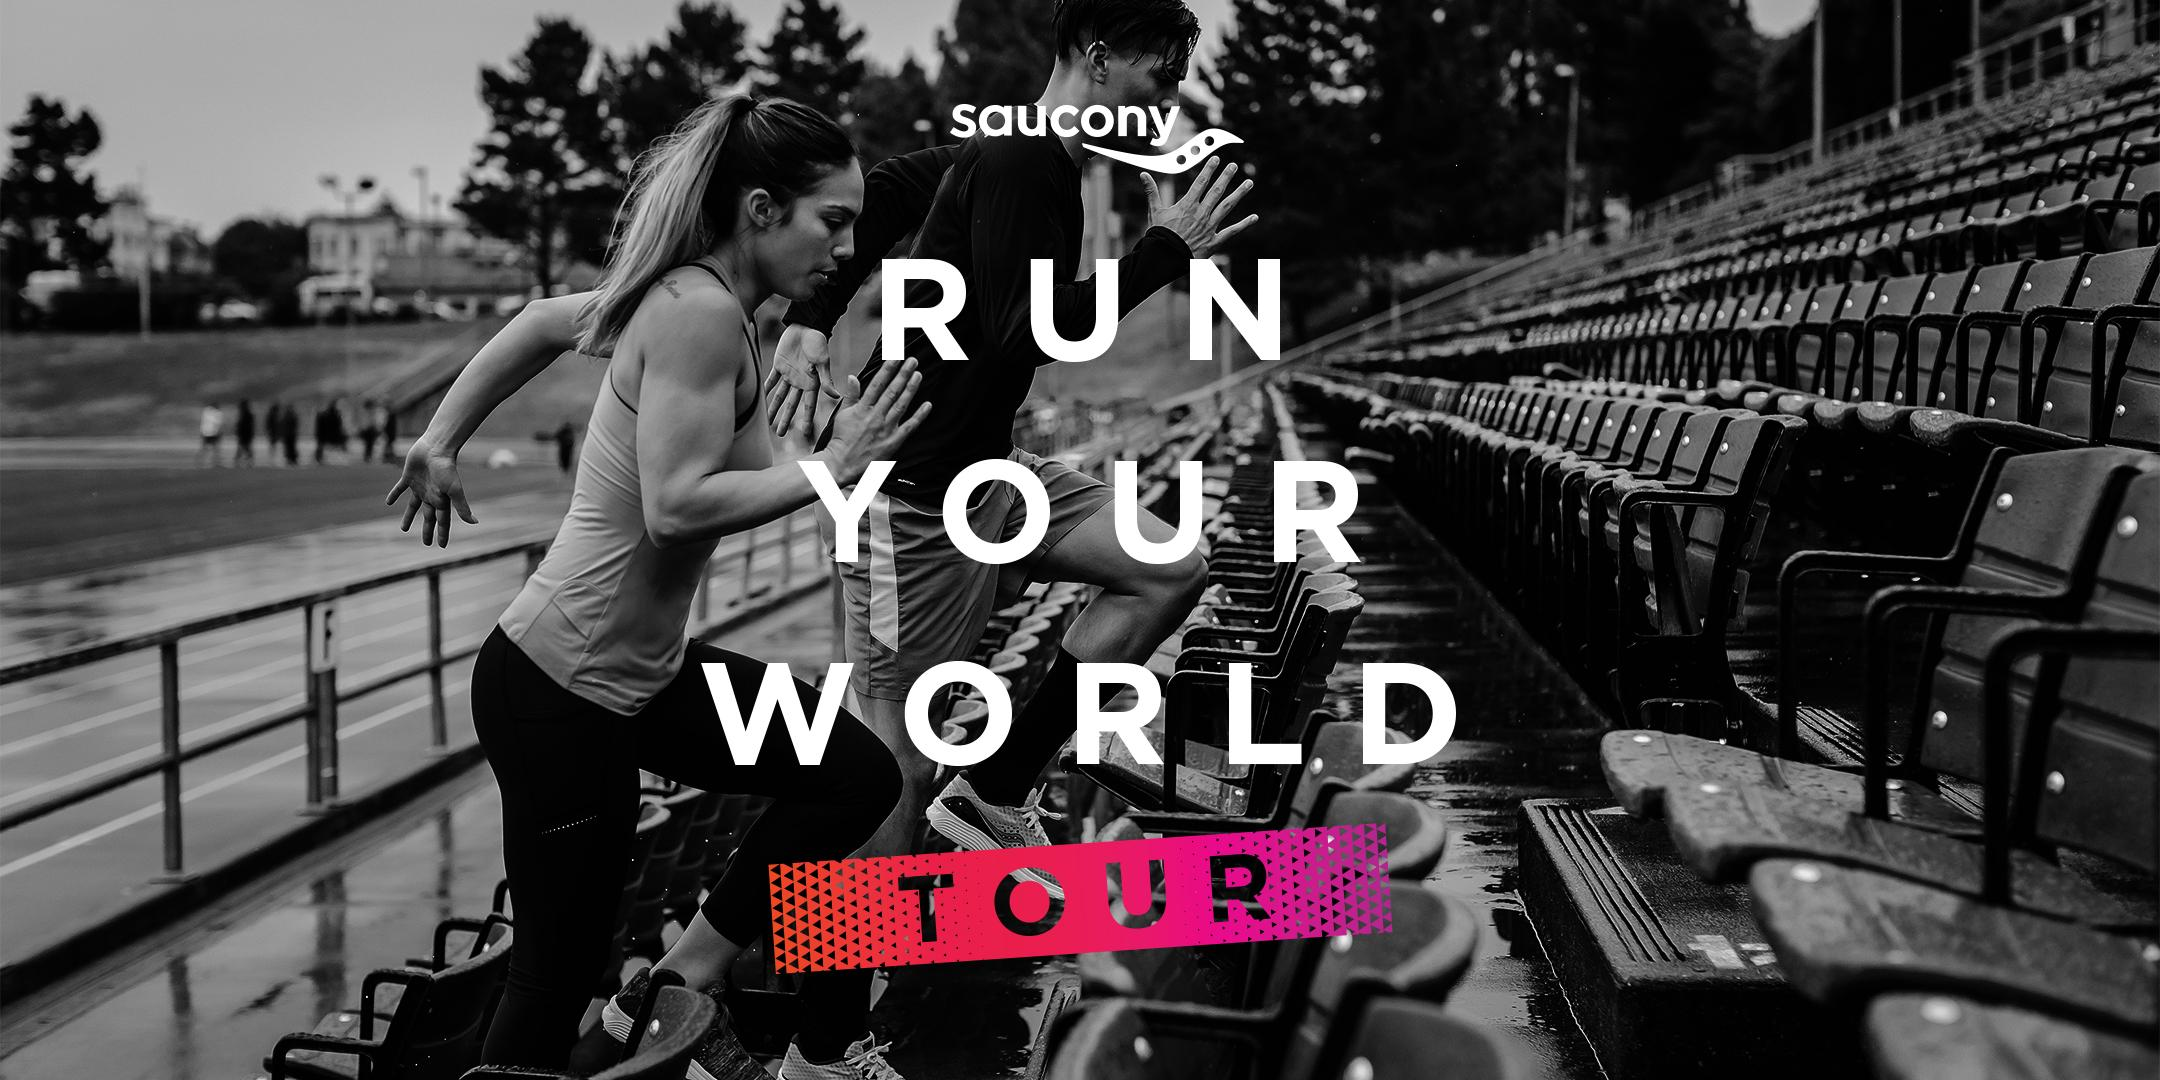 Saucony Run Your World Tour - Rochester